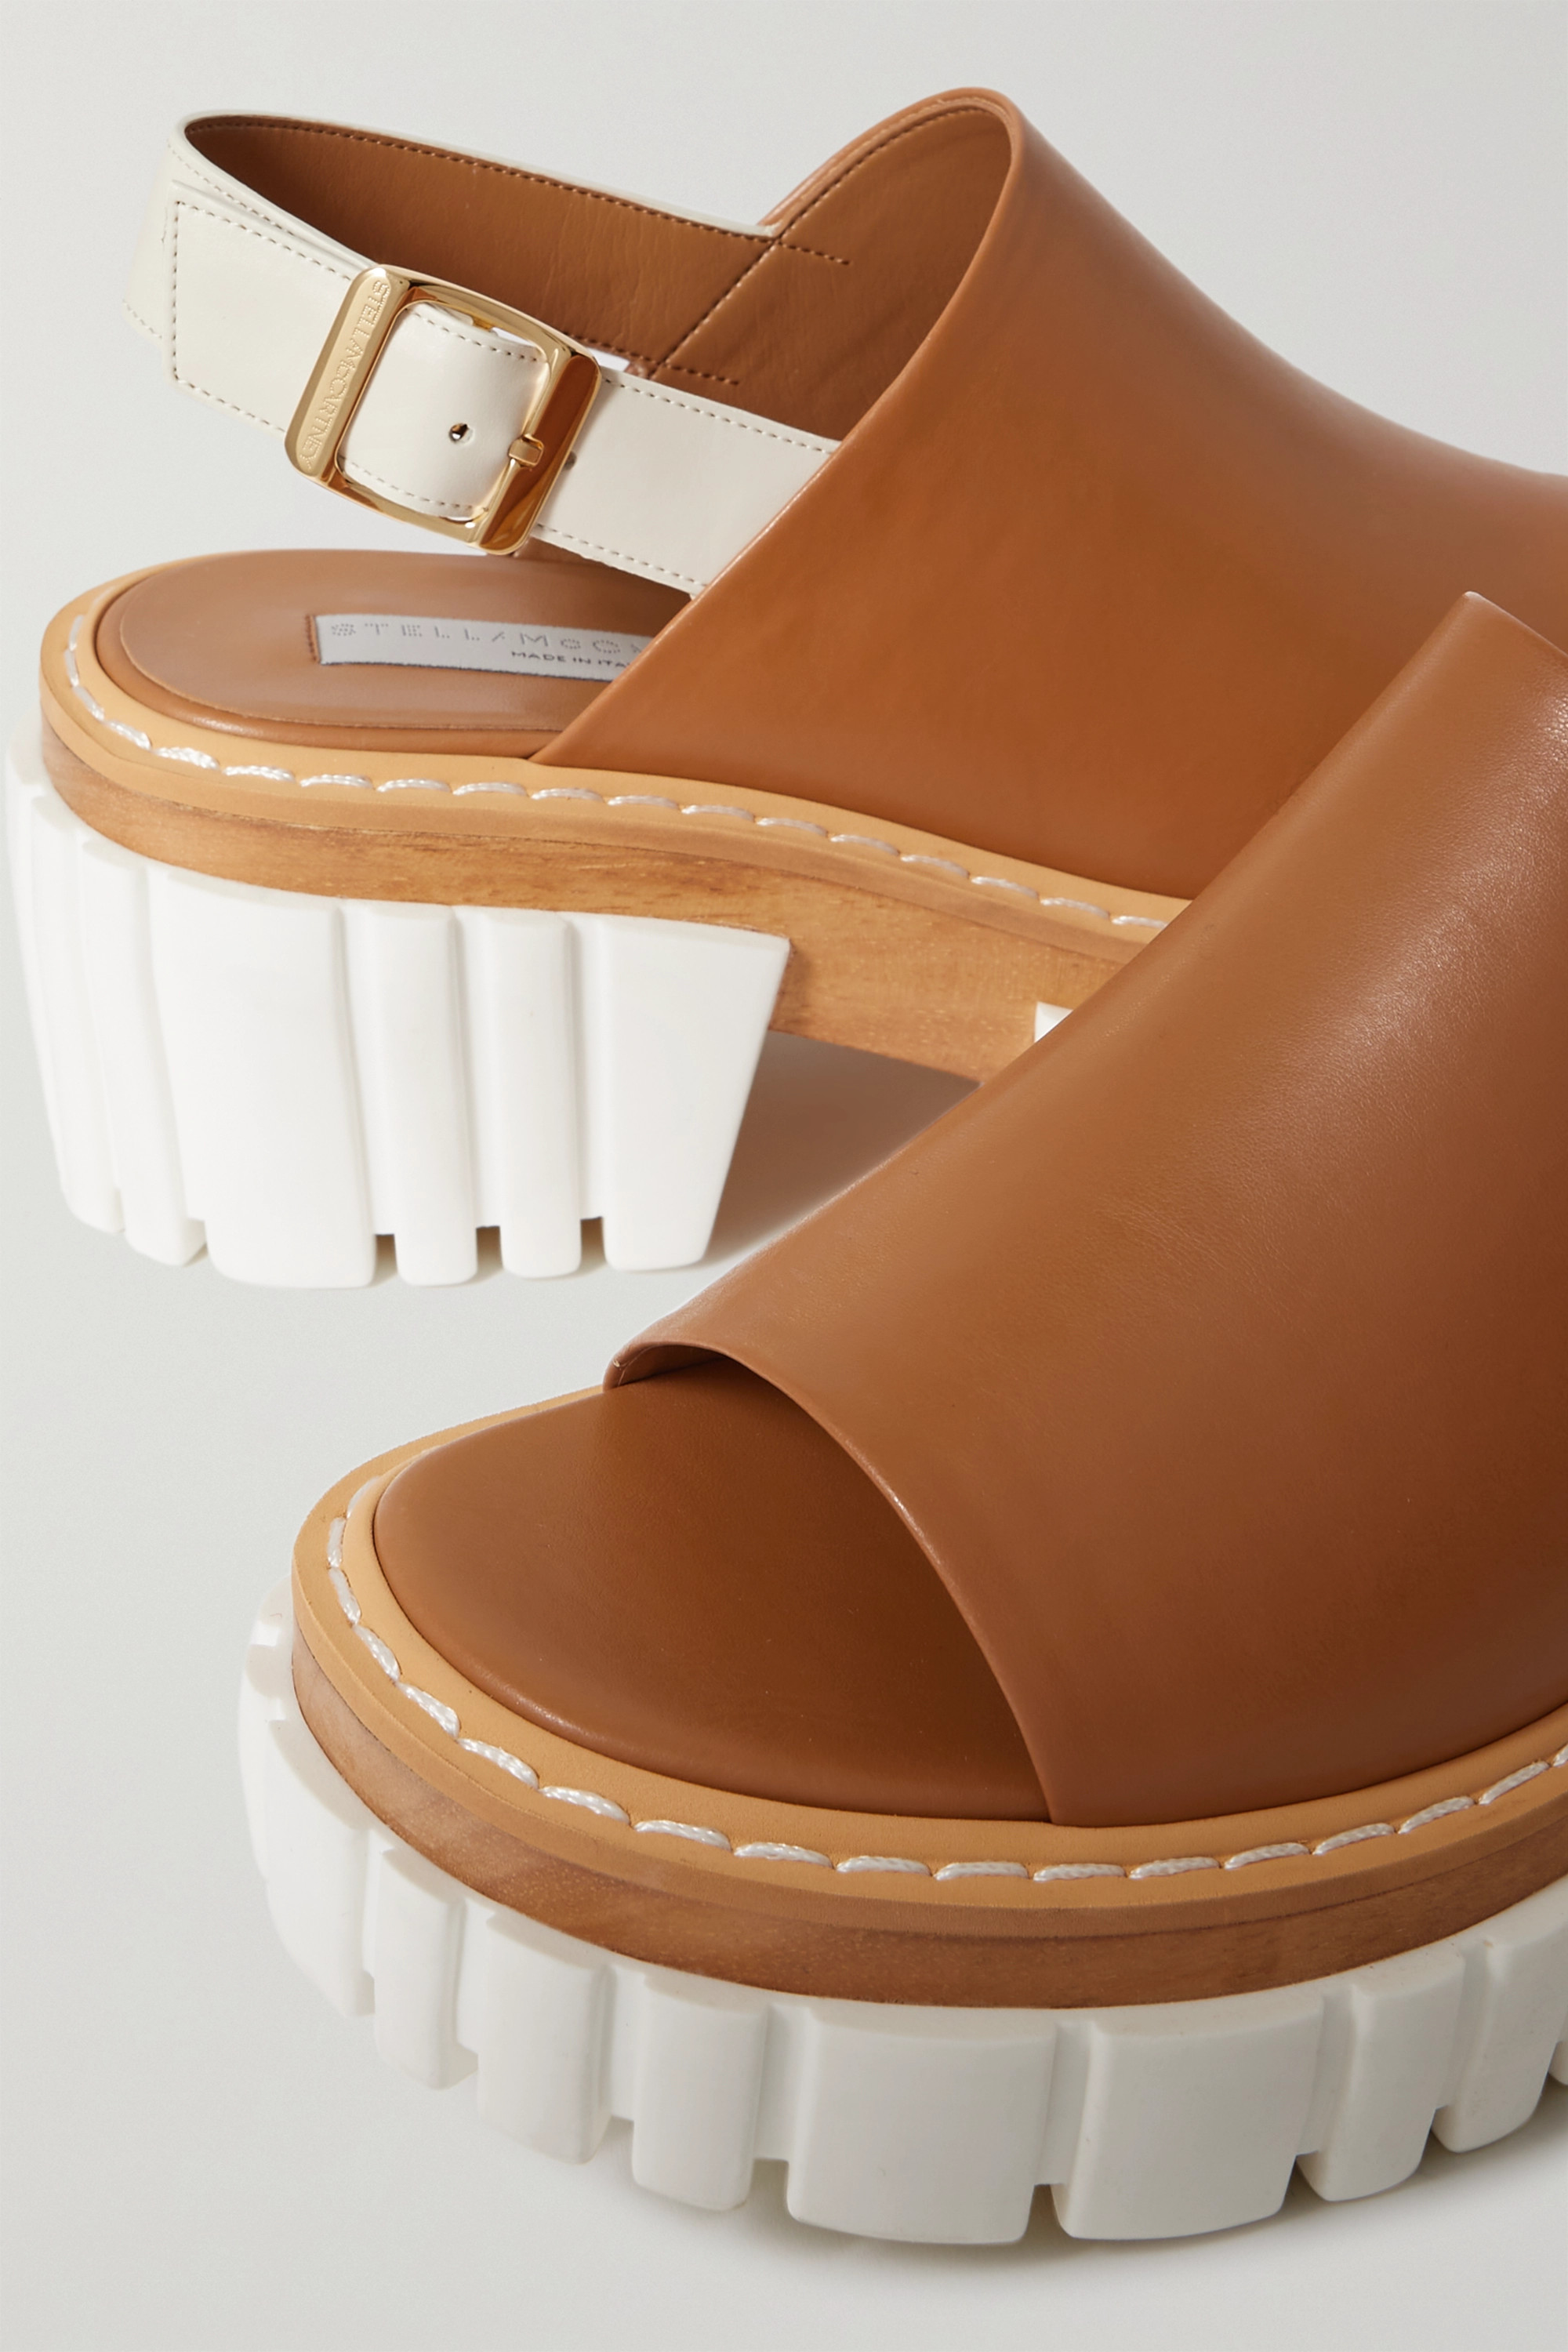 STELLA MCCARTNEY Emilie vegetarian leather slingback platform sandals